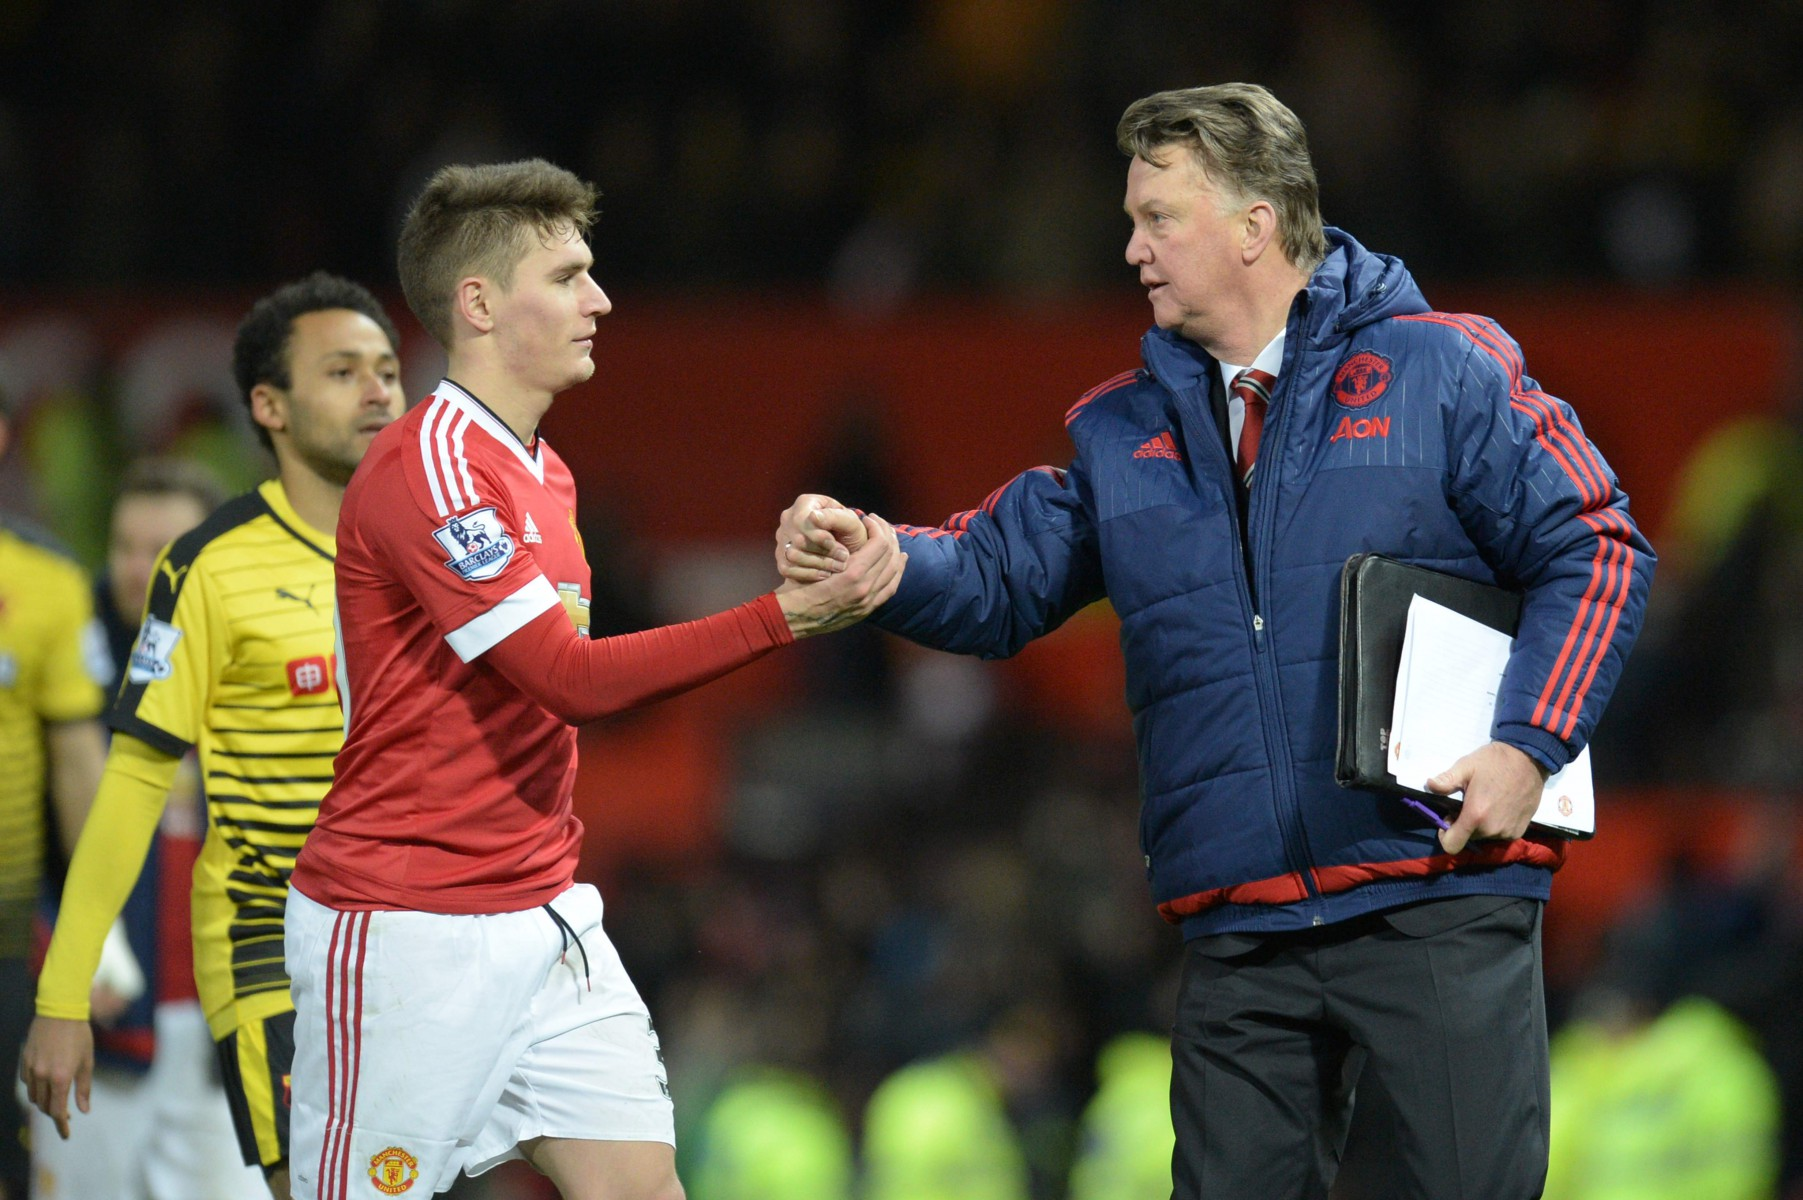 Varela will always be grateful for 'crazy' Louis van Gaal who gave him his 11 United appearances